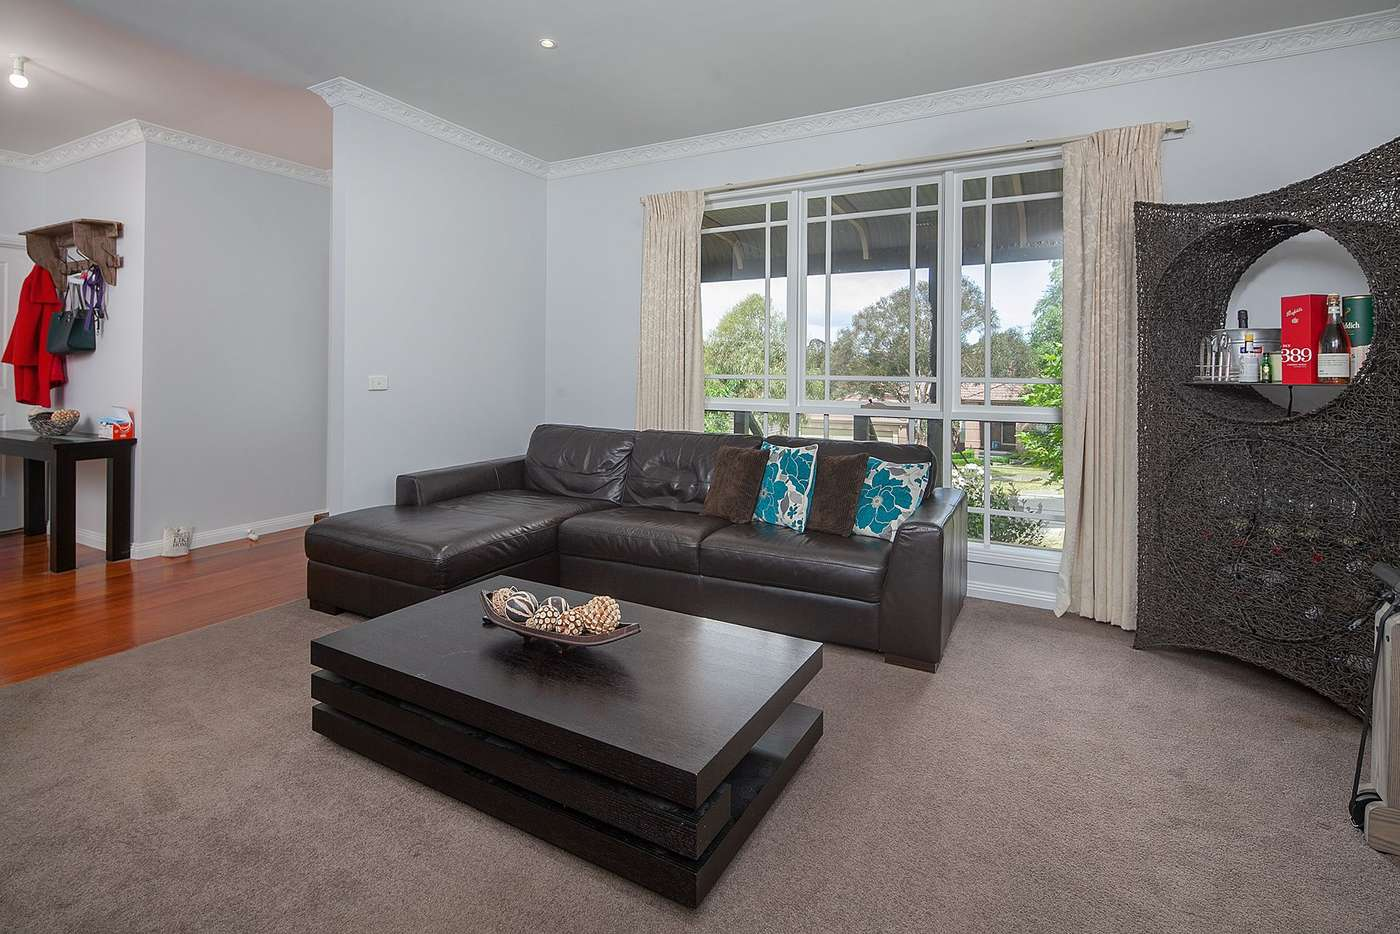 Sixth view of Homely house listing, 20 Candwindara Court, Langwarrin VIC 3910